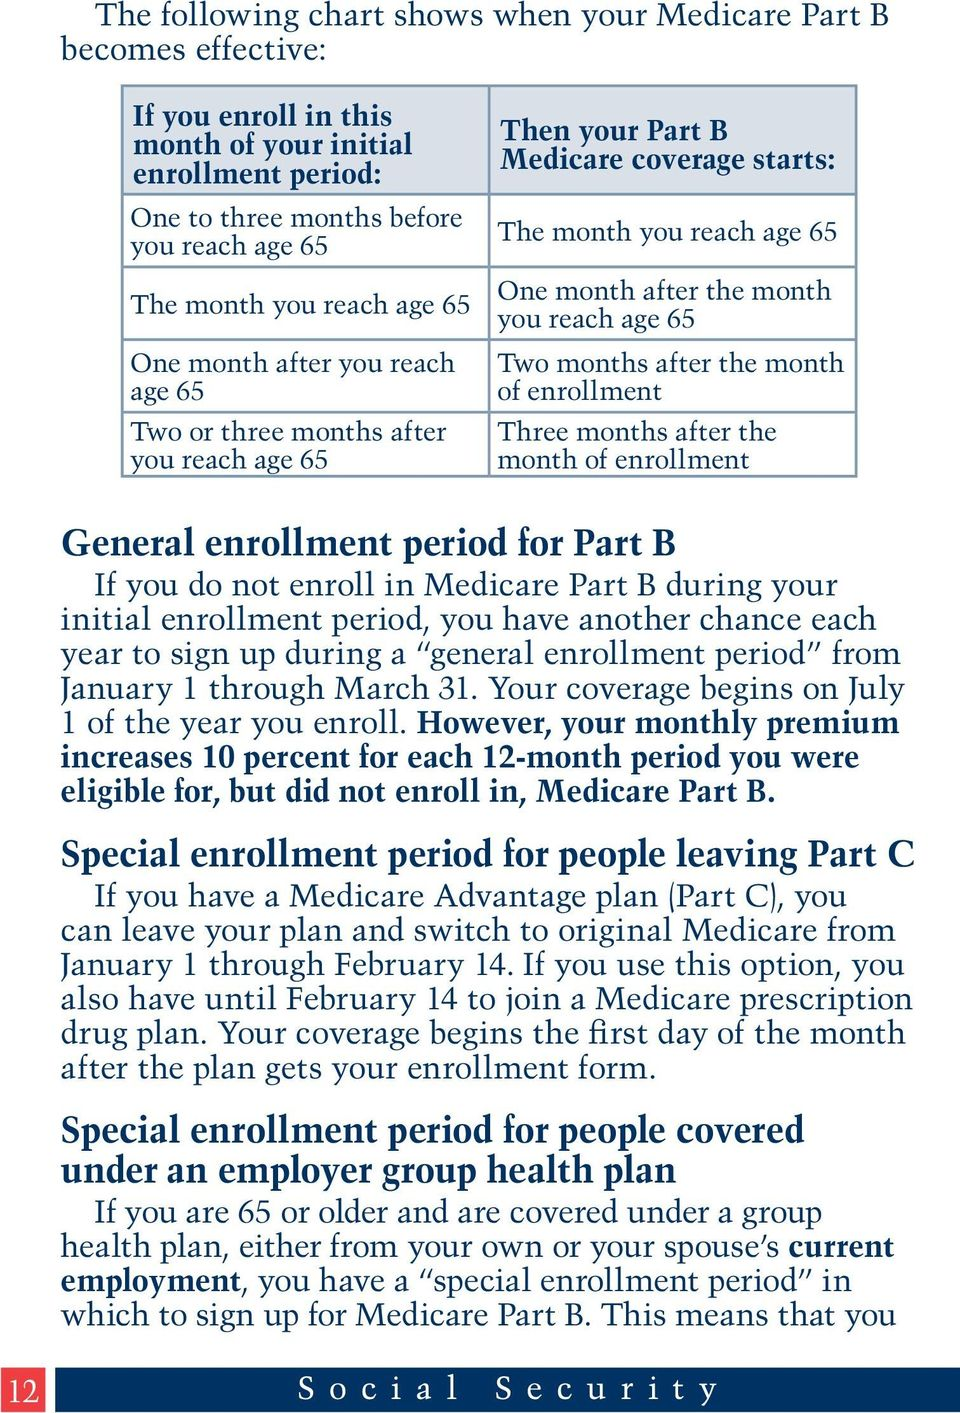 months after the month of enrollment Three months after the month of enrollment General enrollment period for Part B If you do not enroll in Medicare Part B during your initial enrollment period, you